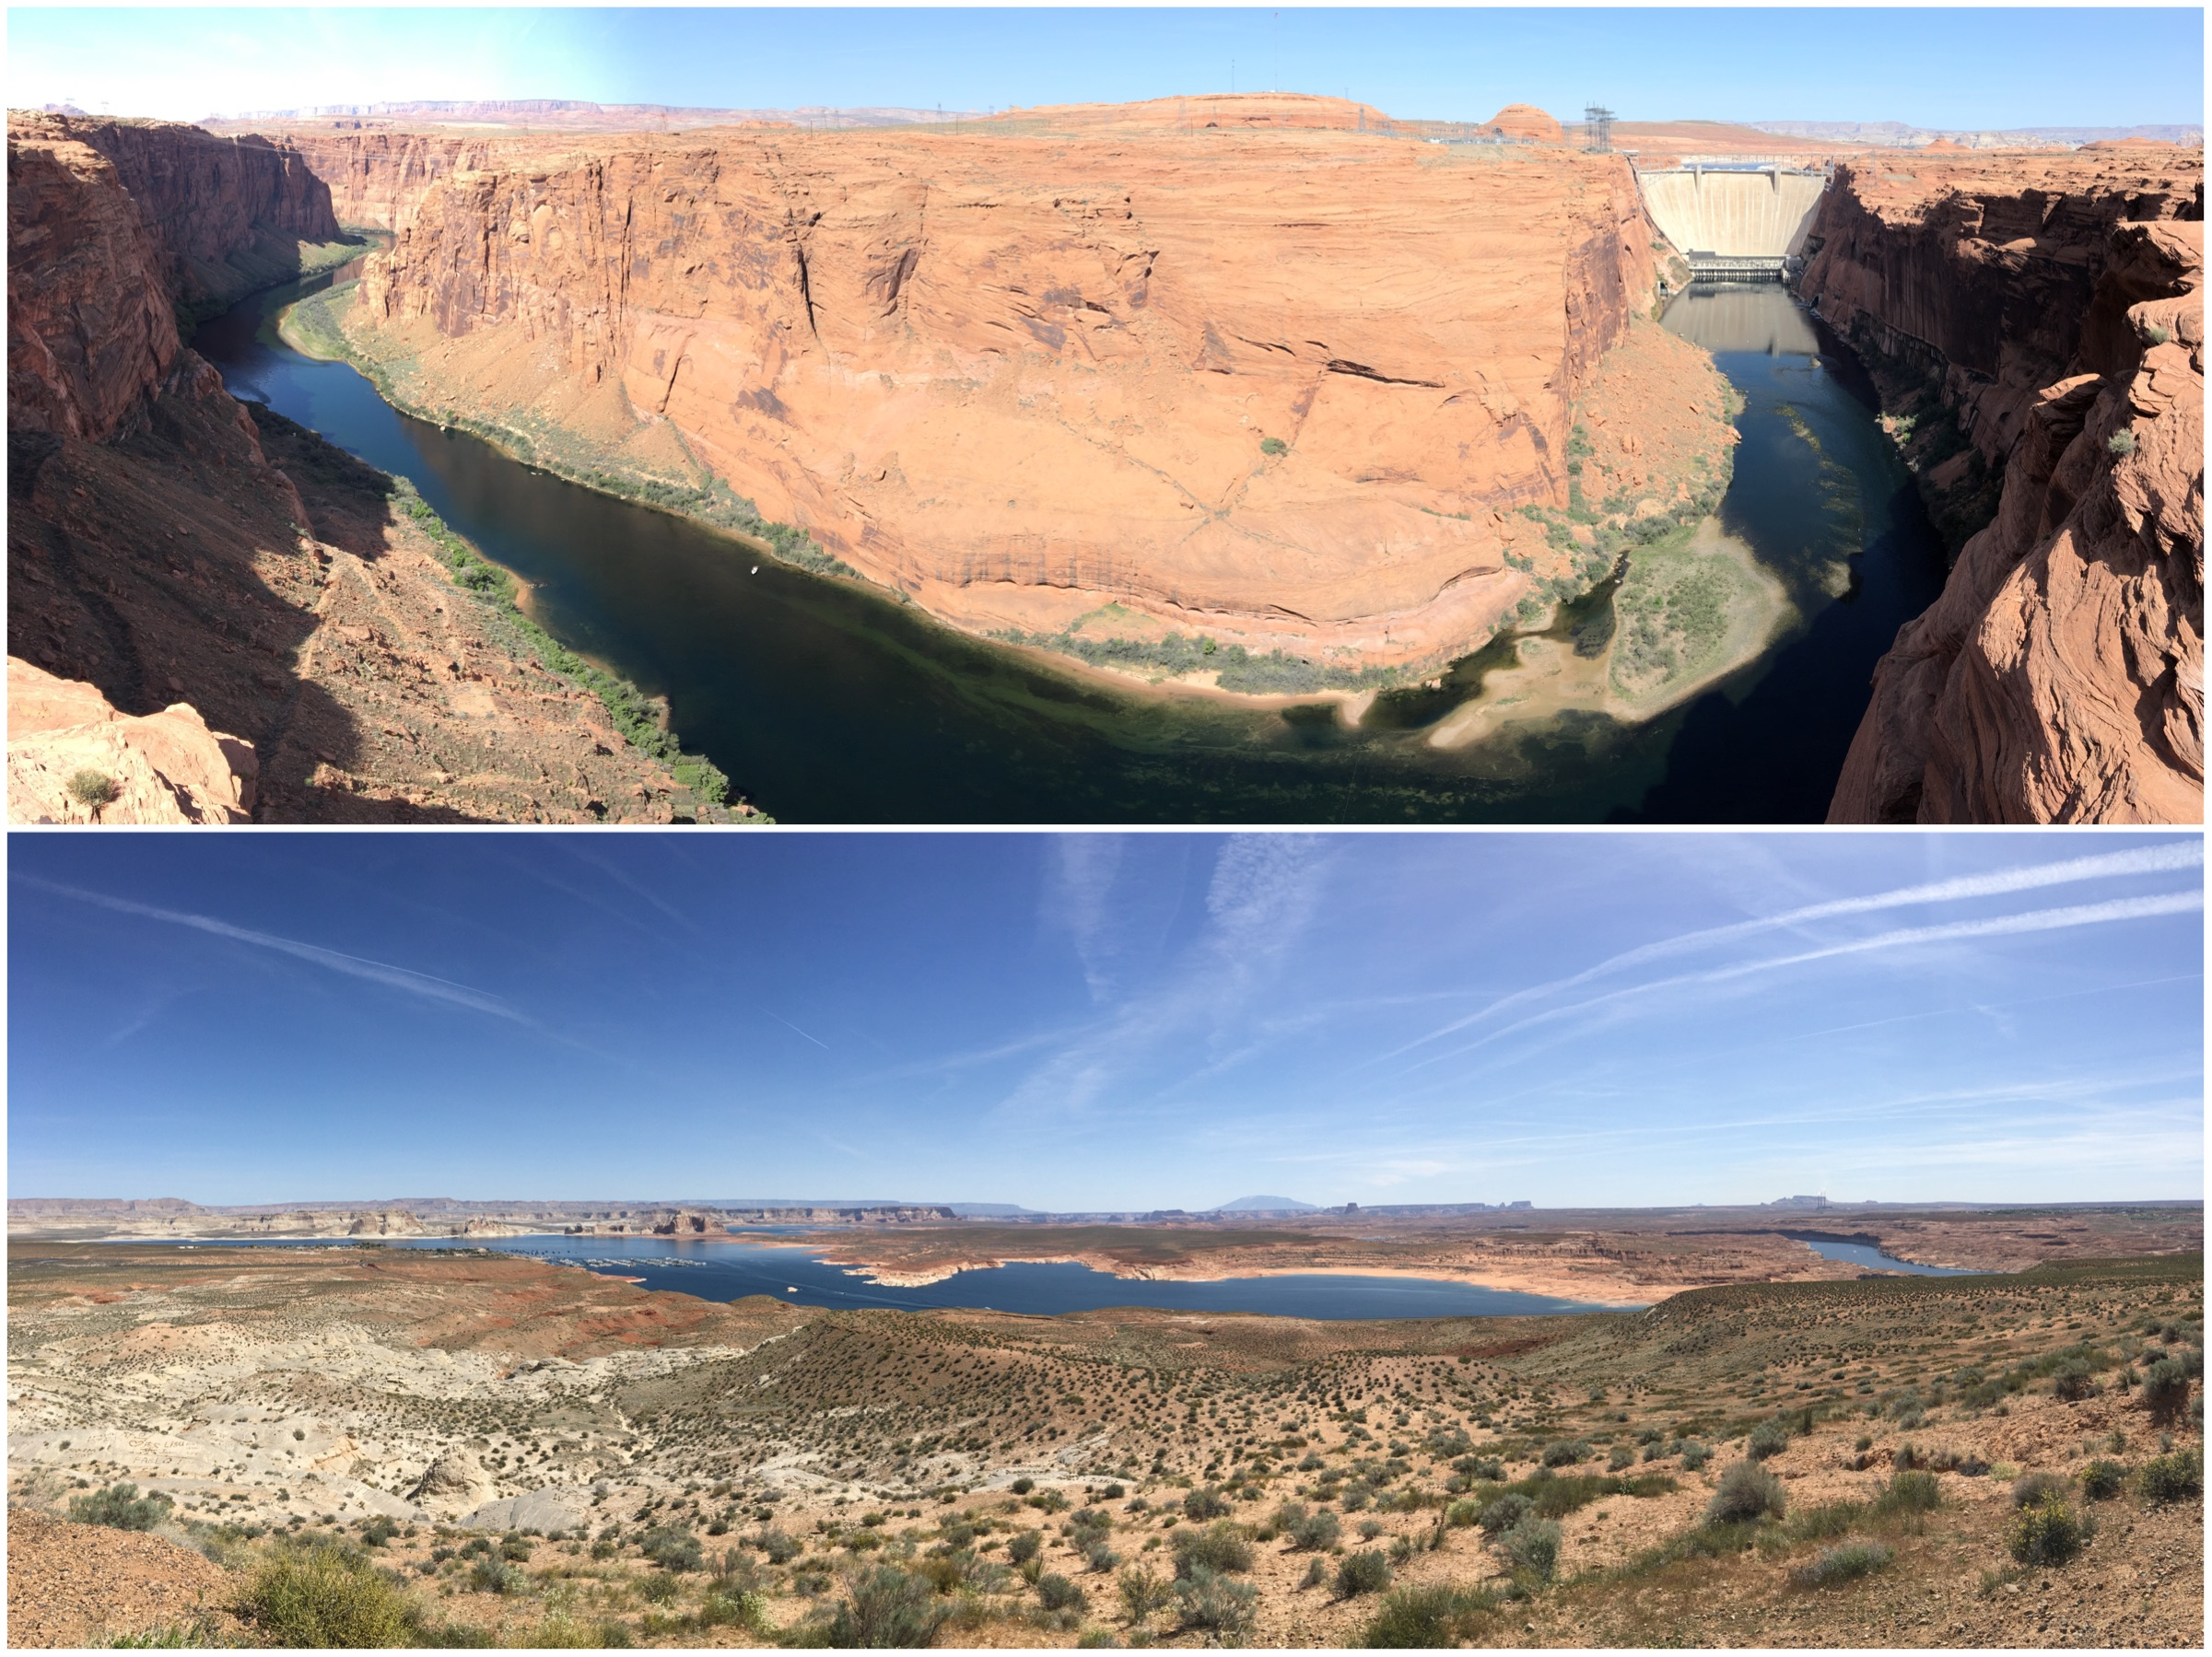 Glen Canyon Dam Overlook (la diga del Glen Canyon) e Wahweap Overlook sopra il Lago Powell